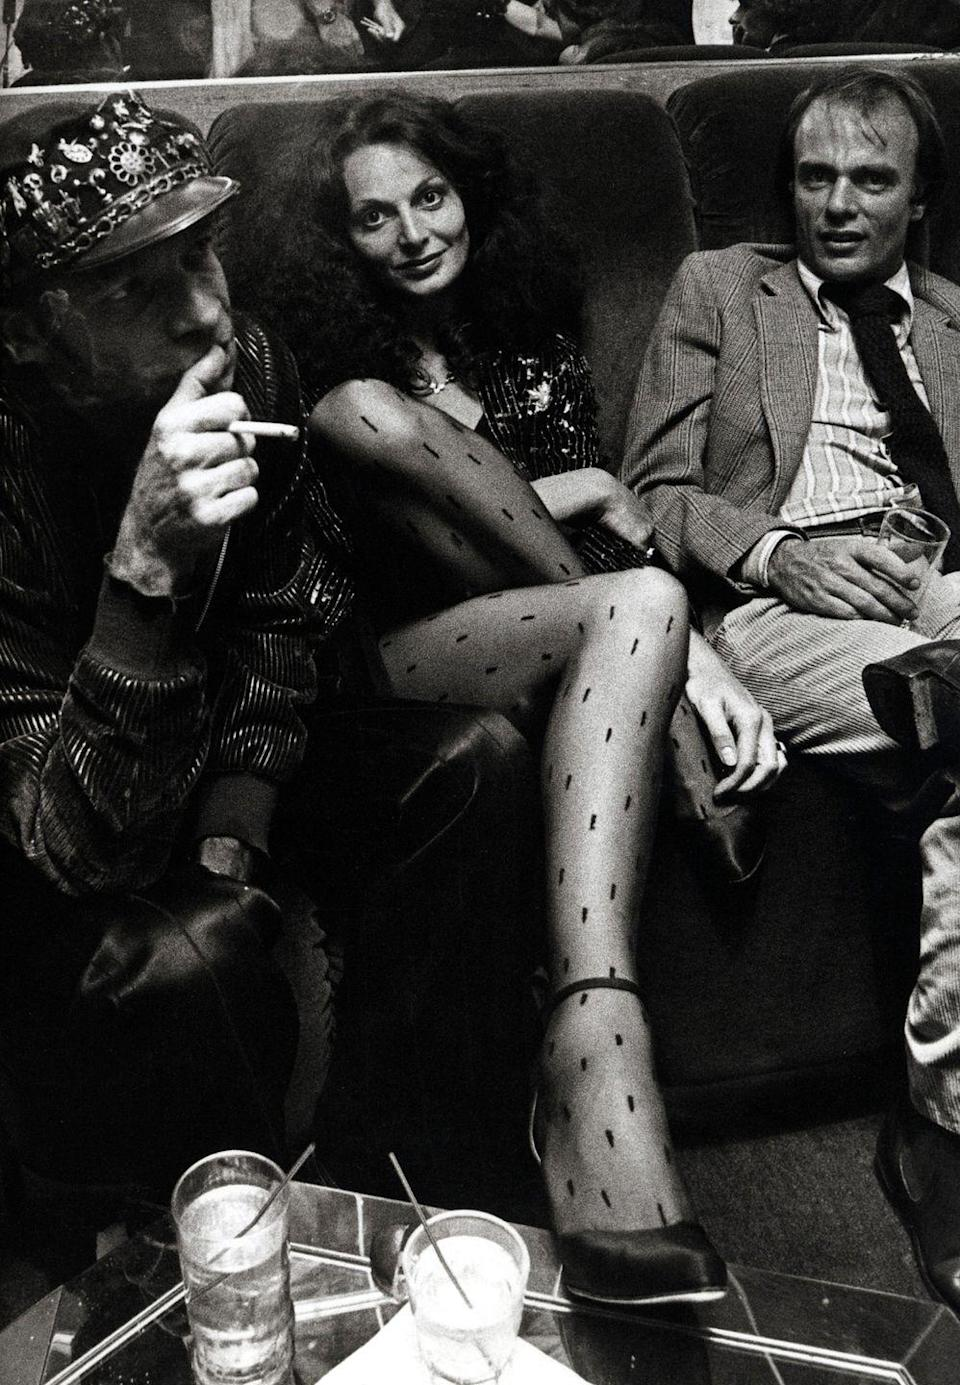 """<p>Diane Von Furstenberg lounges on the couches at Studio 54 in 1978, alongside her friend, Ara Gallant. She was at the nightclub for the launch of her husband Egor Von Furstenberg's book, <em><a href=""""https://www.amazon.com/Power-Look-Egon-von-Furstenberg/dp/0030204569?tag=syn-yahoo-20&ascsubtag=%5Bartid%7C10063.g.34358555%5Bsrc%7Cyahoo-us"""" rel=""""nofollow noopener"""" target=""""_blank"""" data-ylk=""""slk:The Power Look"""" class=""""link rapid-noclick-resp"""">The Power Look</a></em>. </p>"""